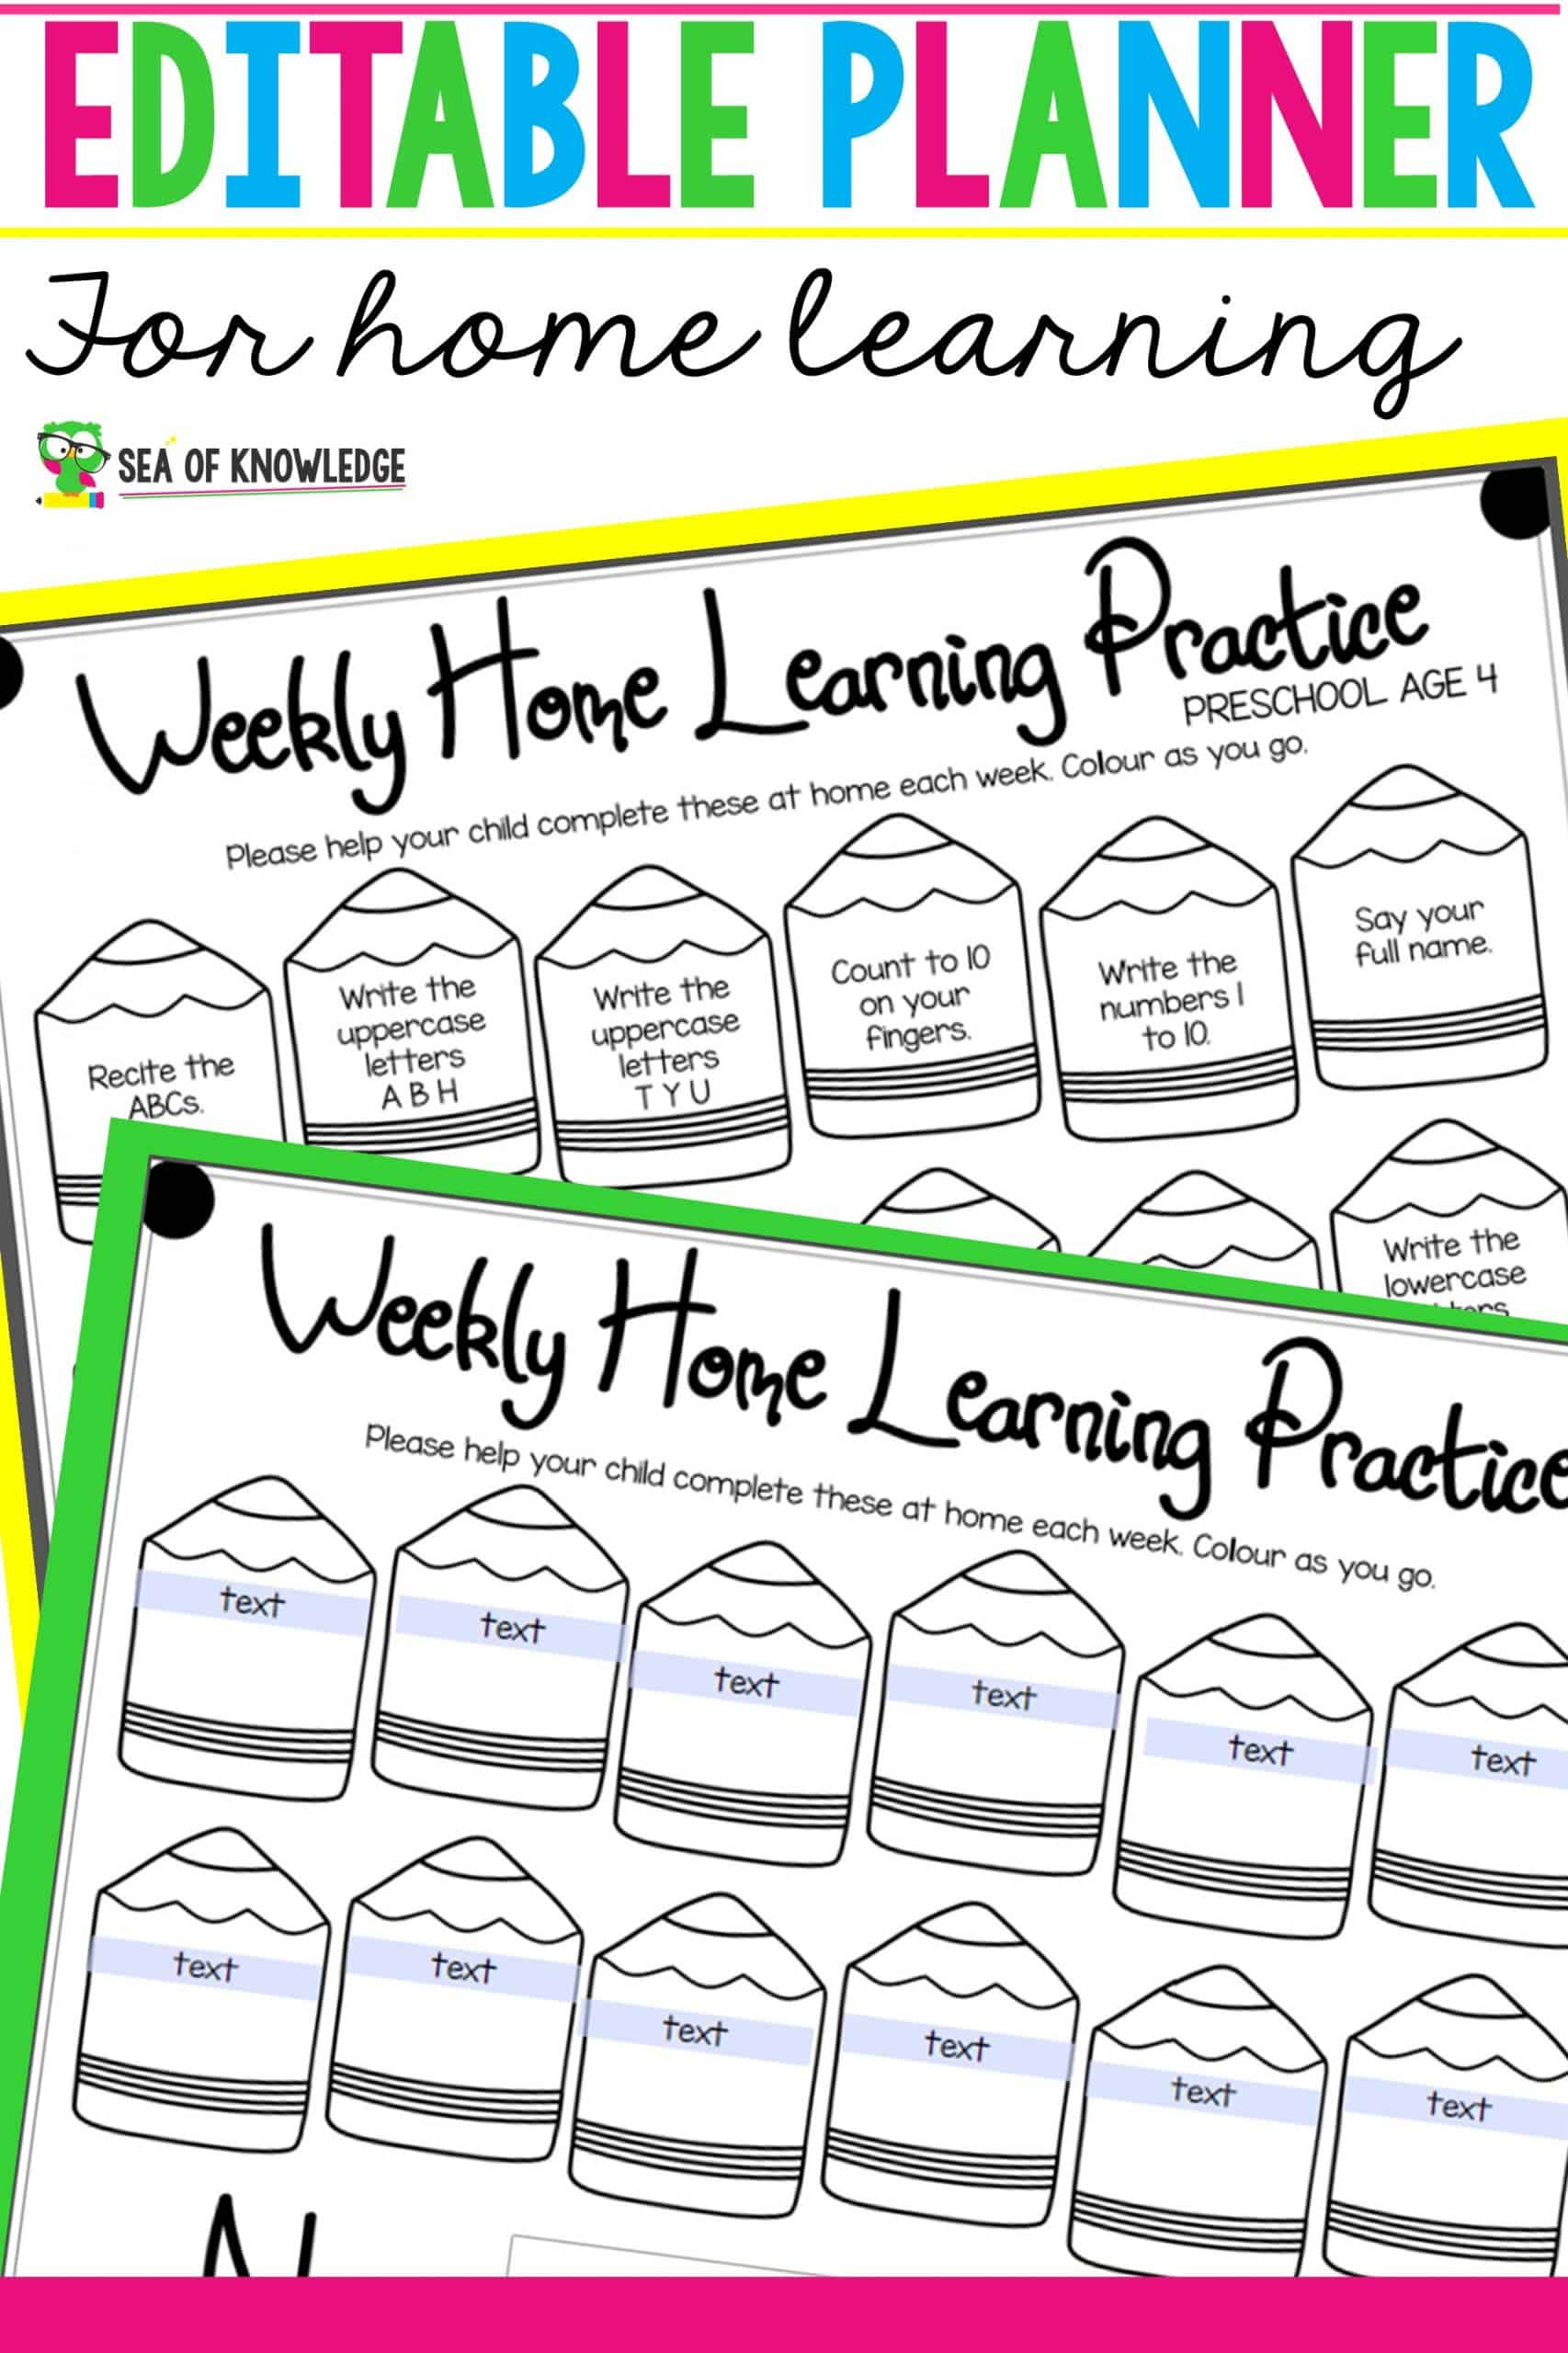 Editable Weekly Planner for Home Learning